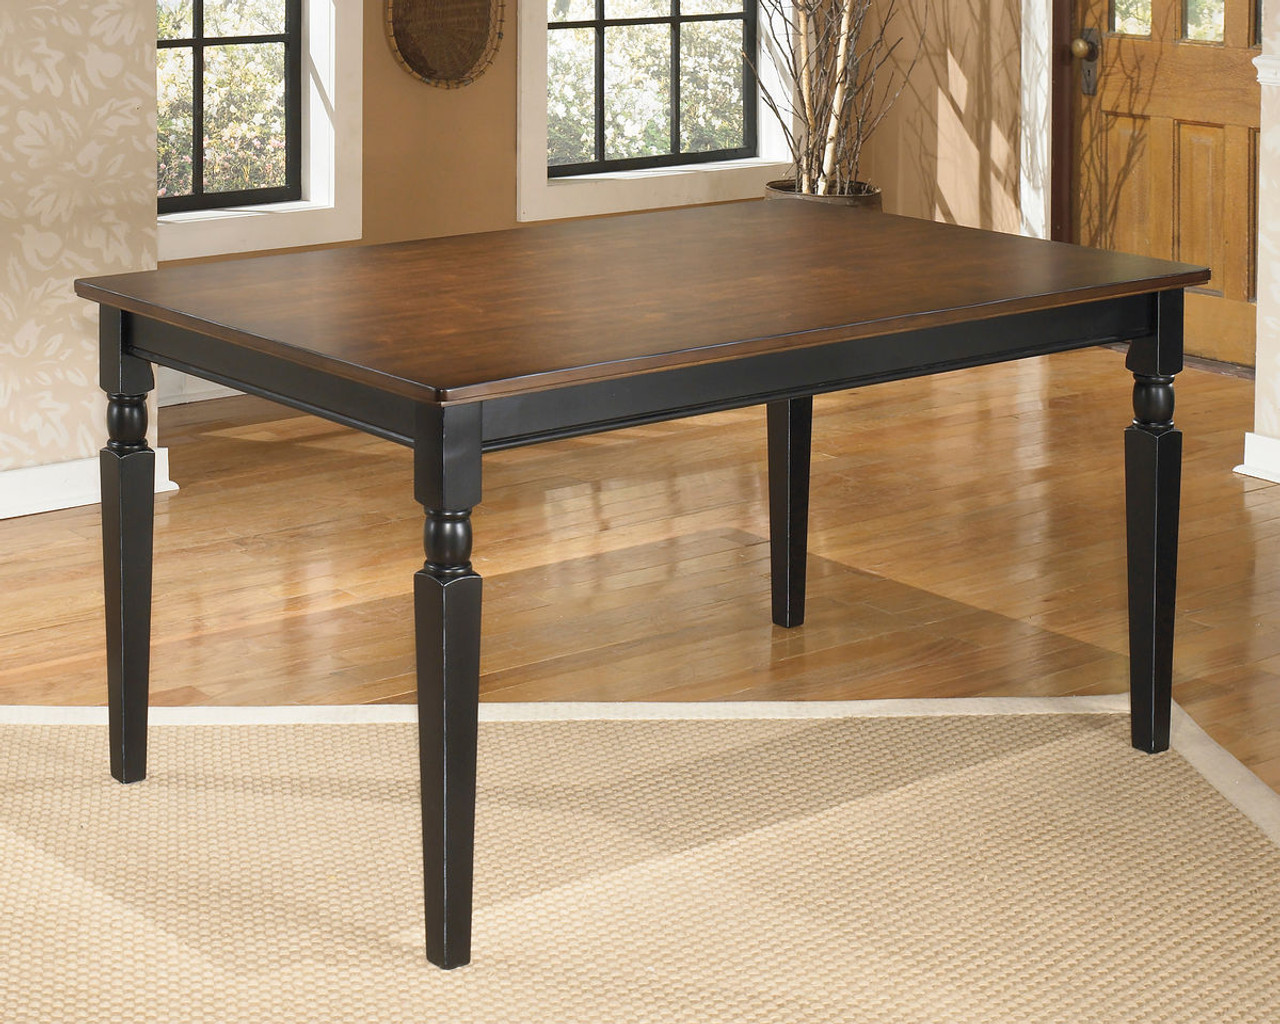 Picture of: The Owingsville Black Brown Rectangular Dining Room Table Available At Home Trends Furniture And Mattress And Jeff S Furniture Serving Rocky Mount Nc